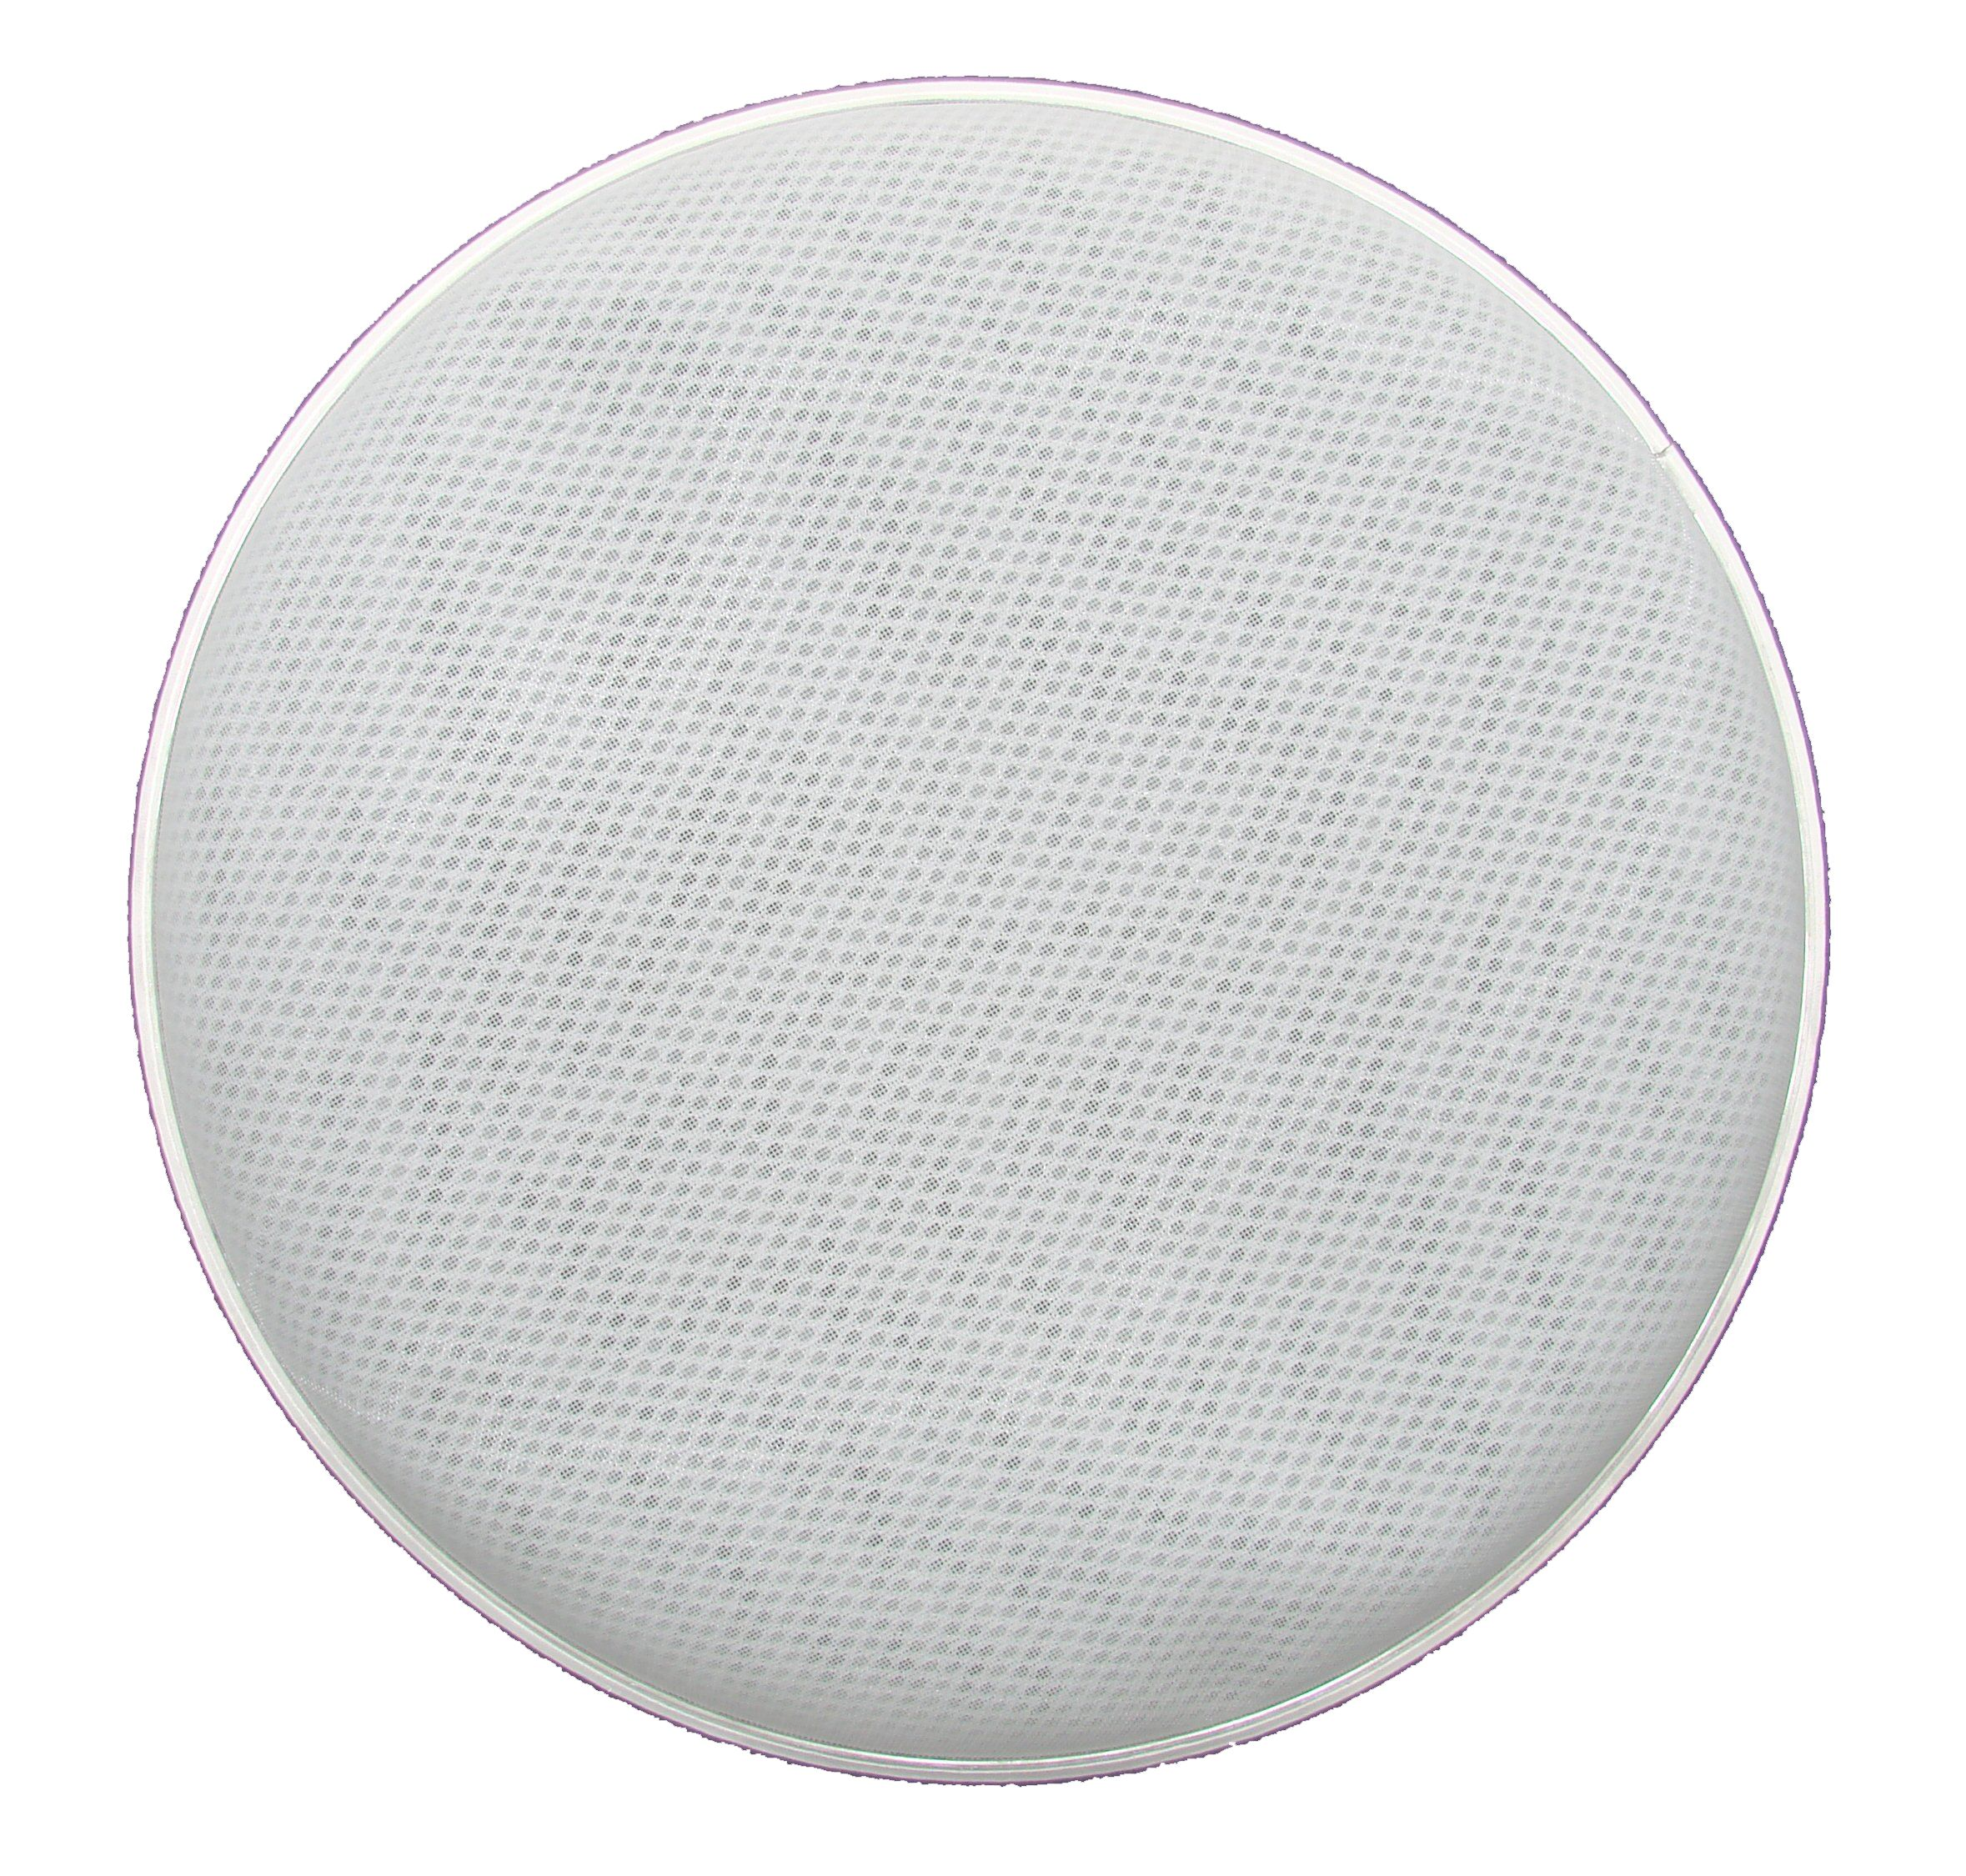 3 ply white mesh heads perfect for silent practicing or e drumming. Black Bedroom Furniture Sets. Home Design Ideas